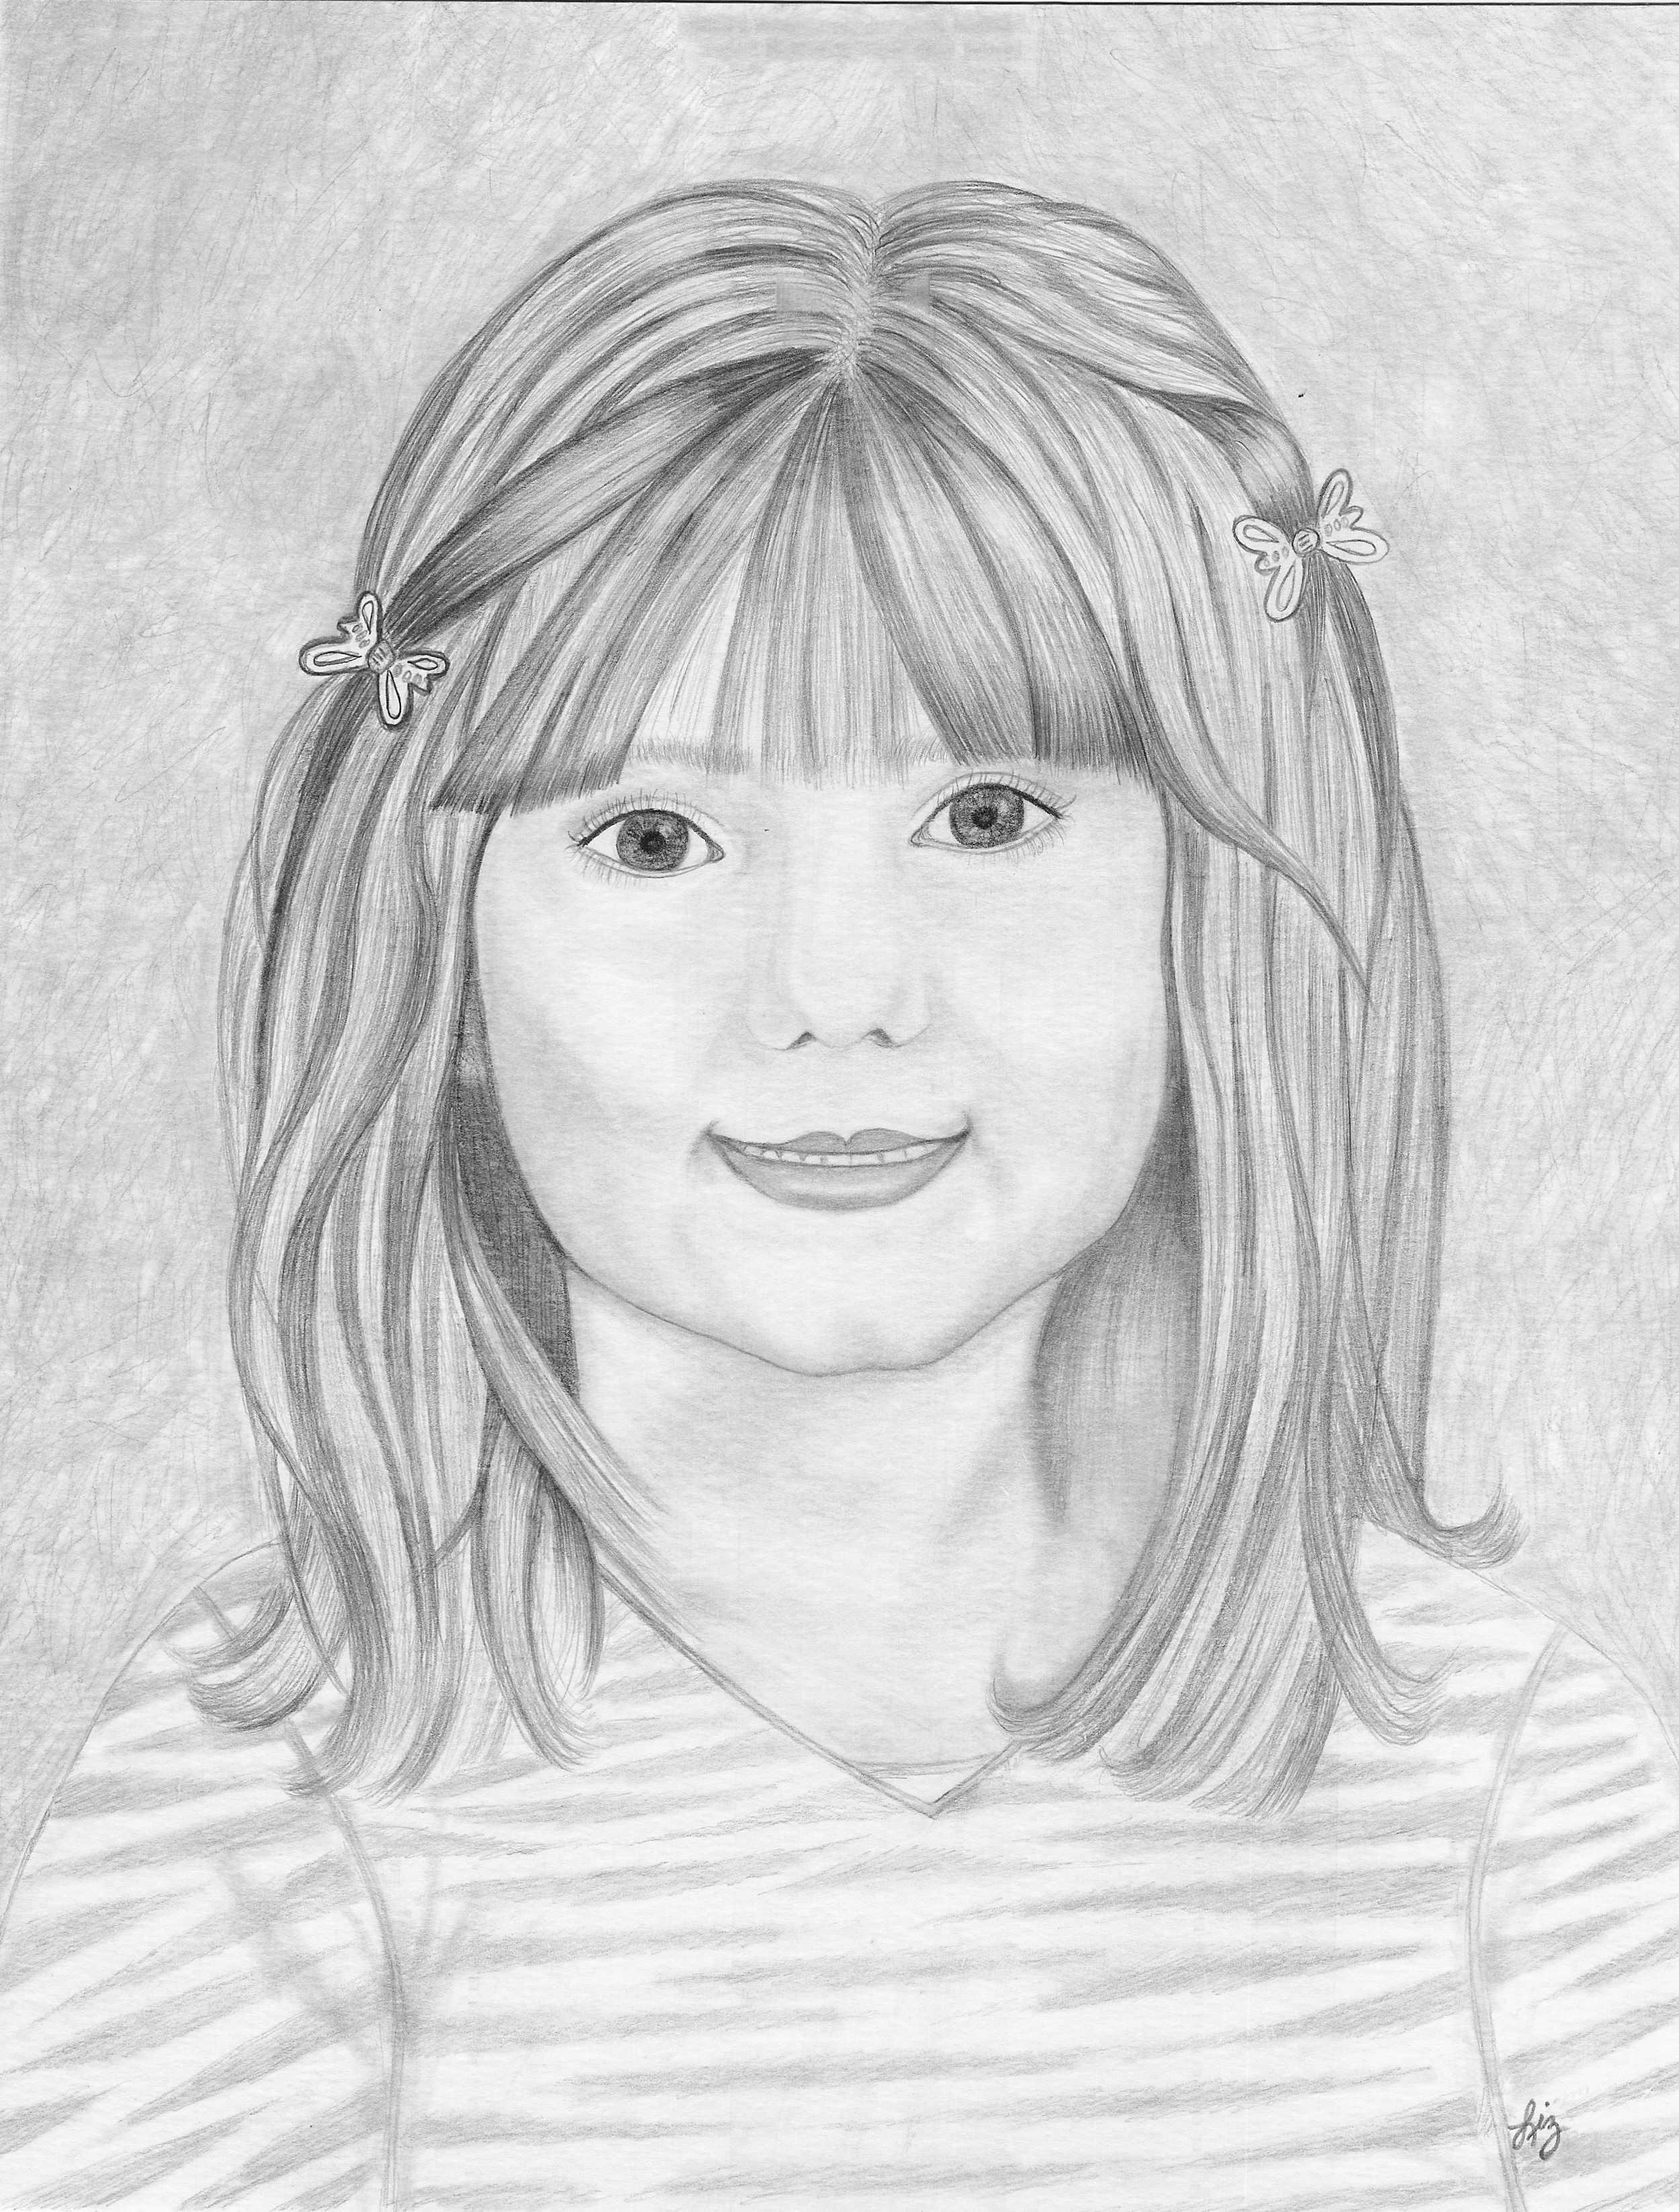 pencil drawings free pencil sketches drawings